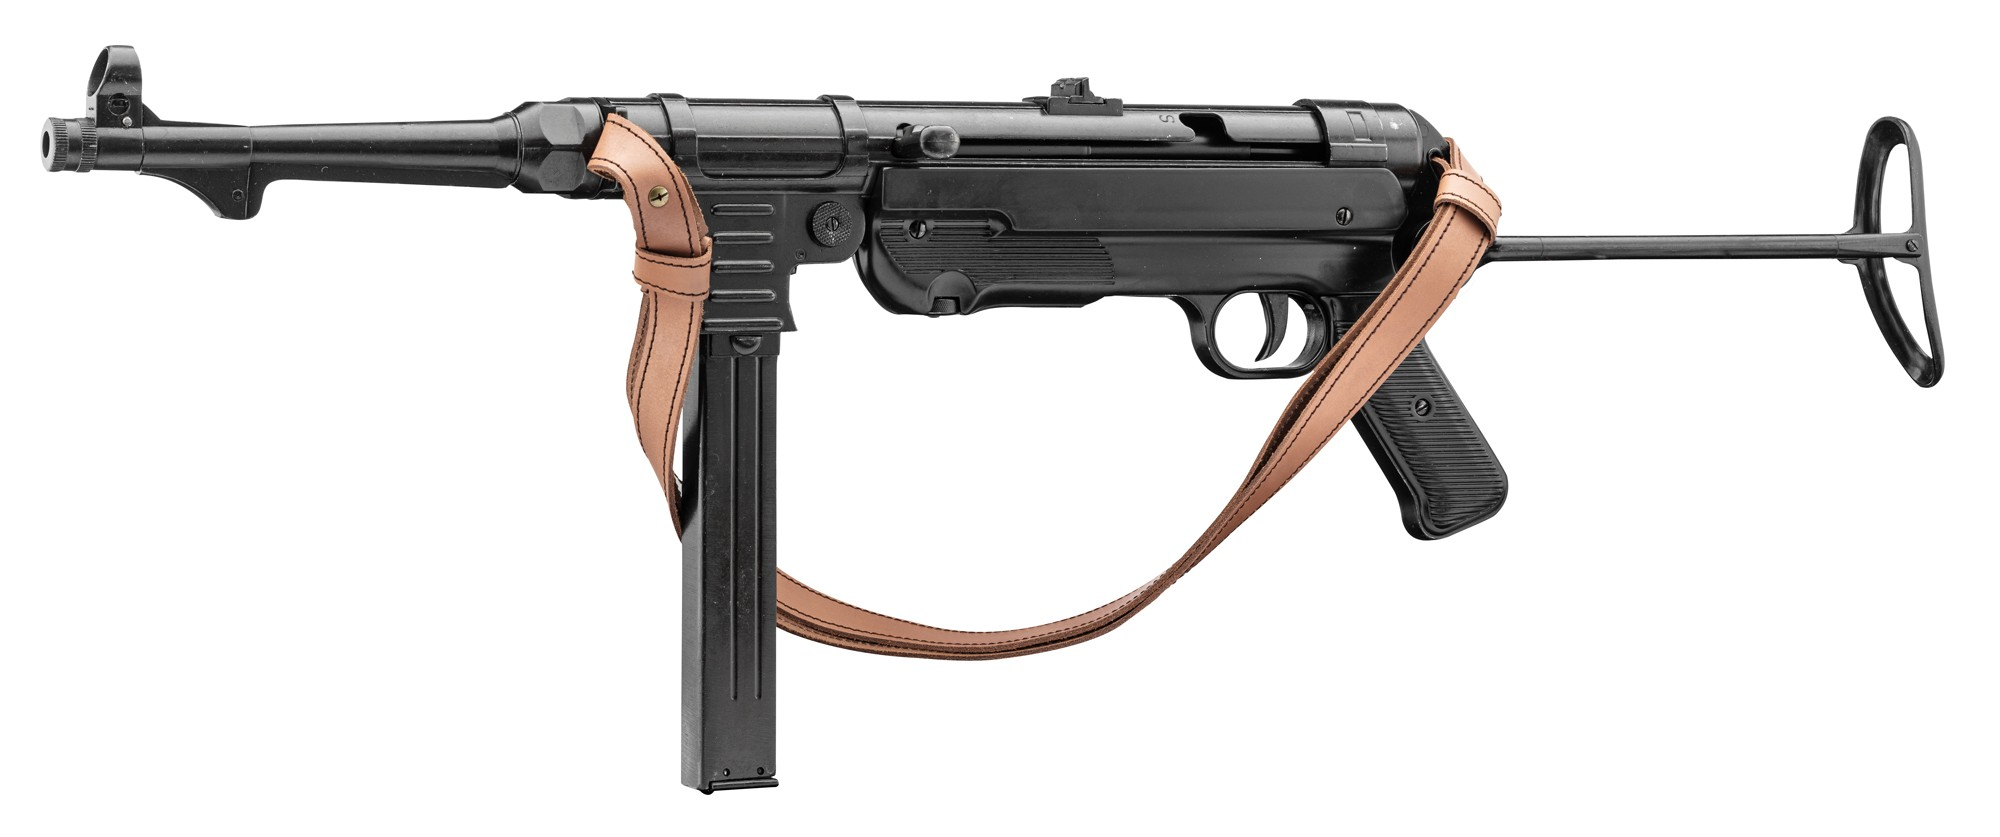 CD1111C Denix decorative replica of the German MP40 submachine gun - CD1111